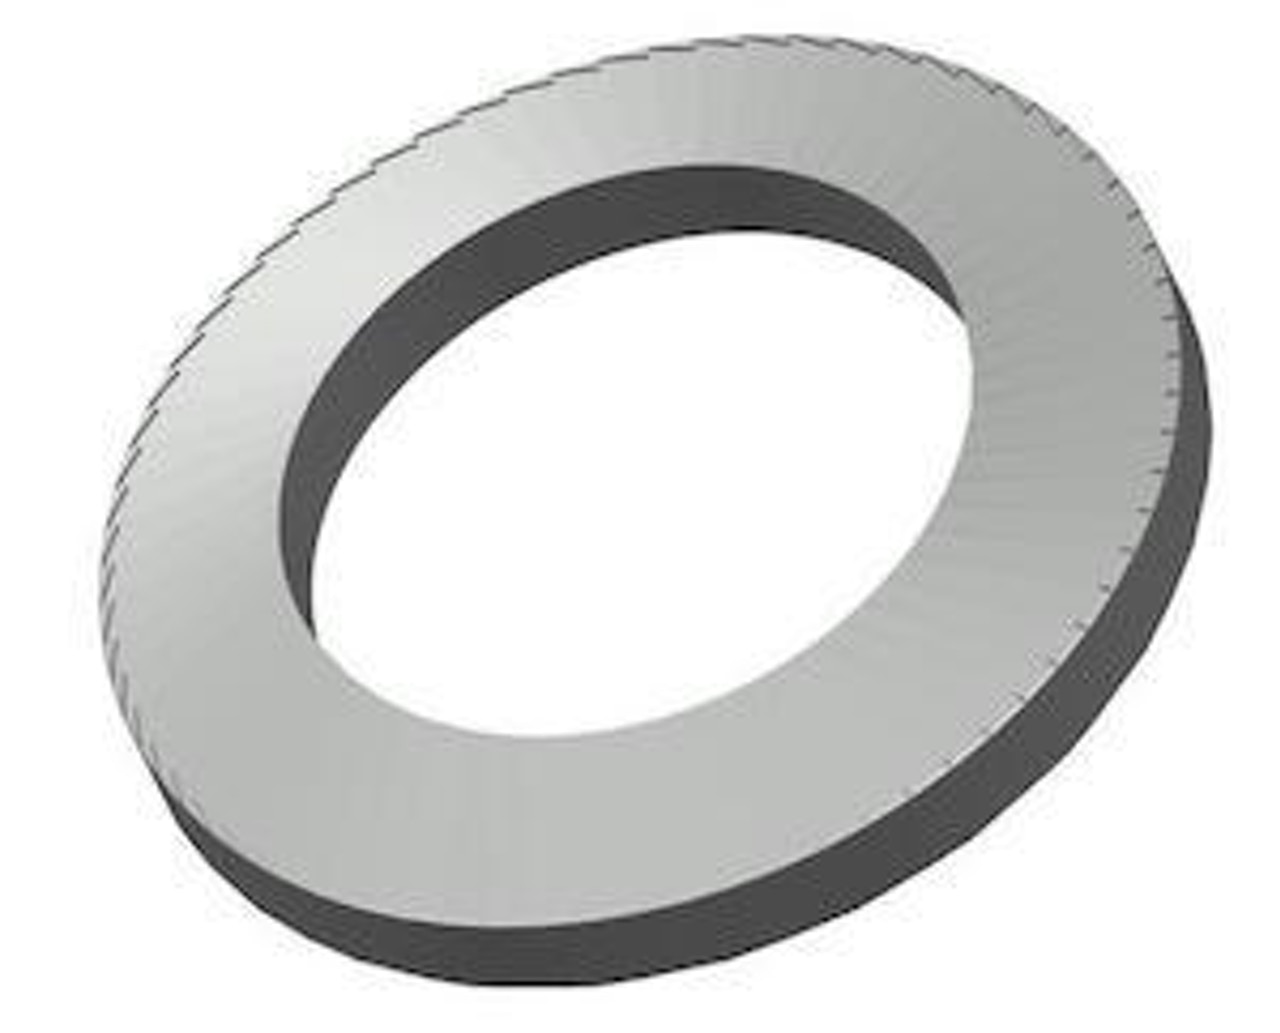 Reinforced serrated disc washer